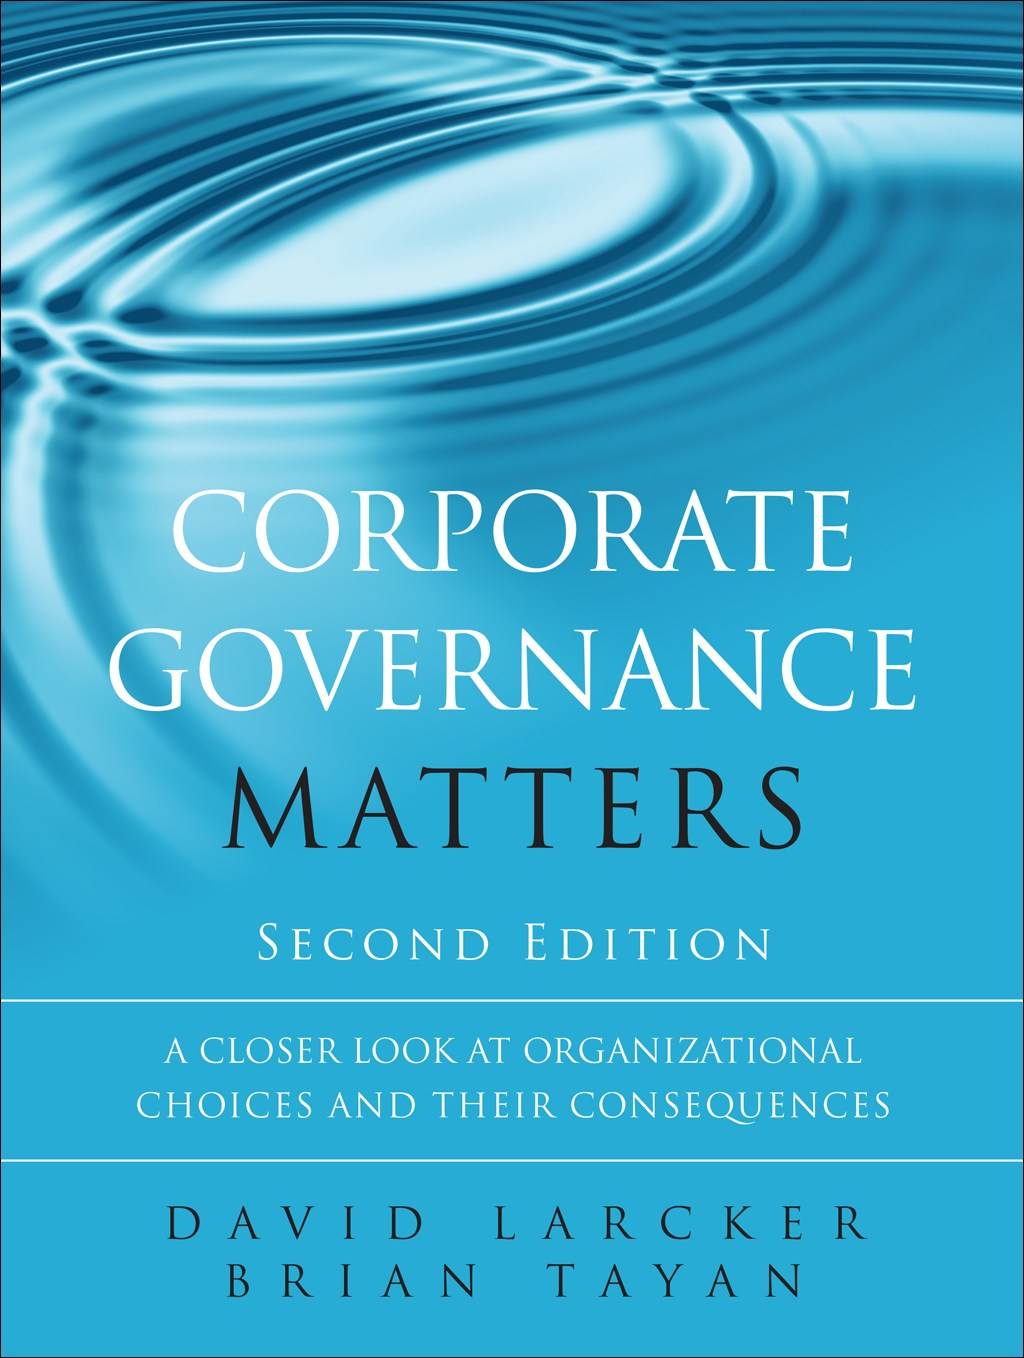 Corporate Governance Matters: A Closer Look at Organizational Choices and Their Consequences, 2nd Edition